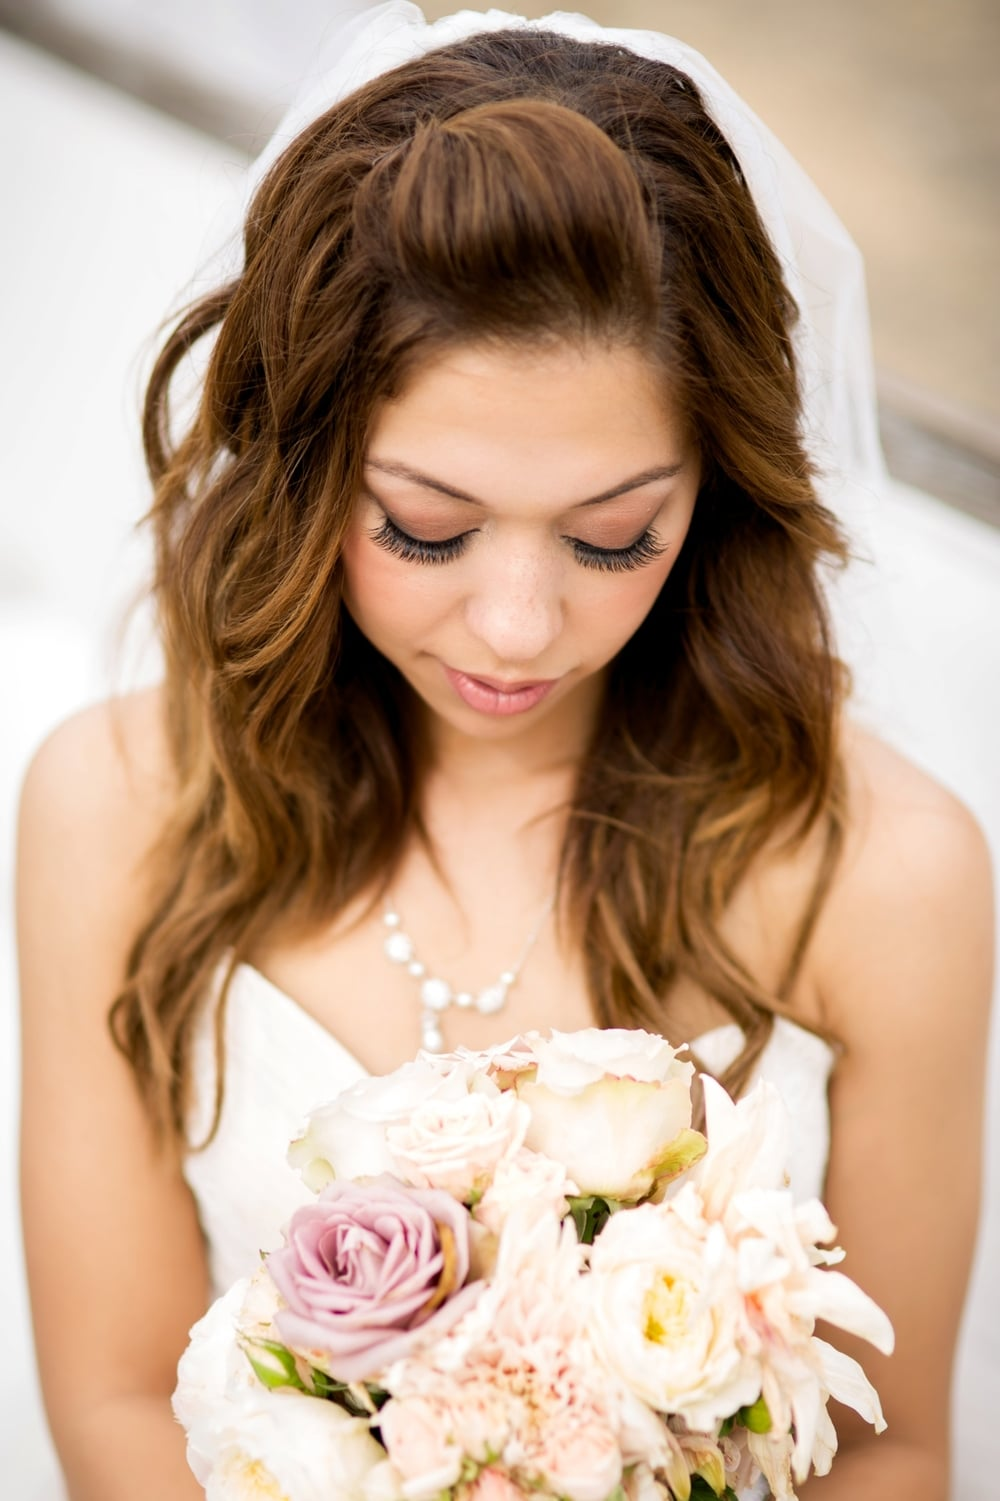 San Francisco Bridal Photographer - Summer.jpg